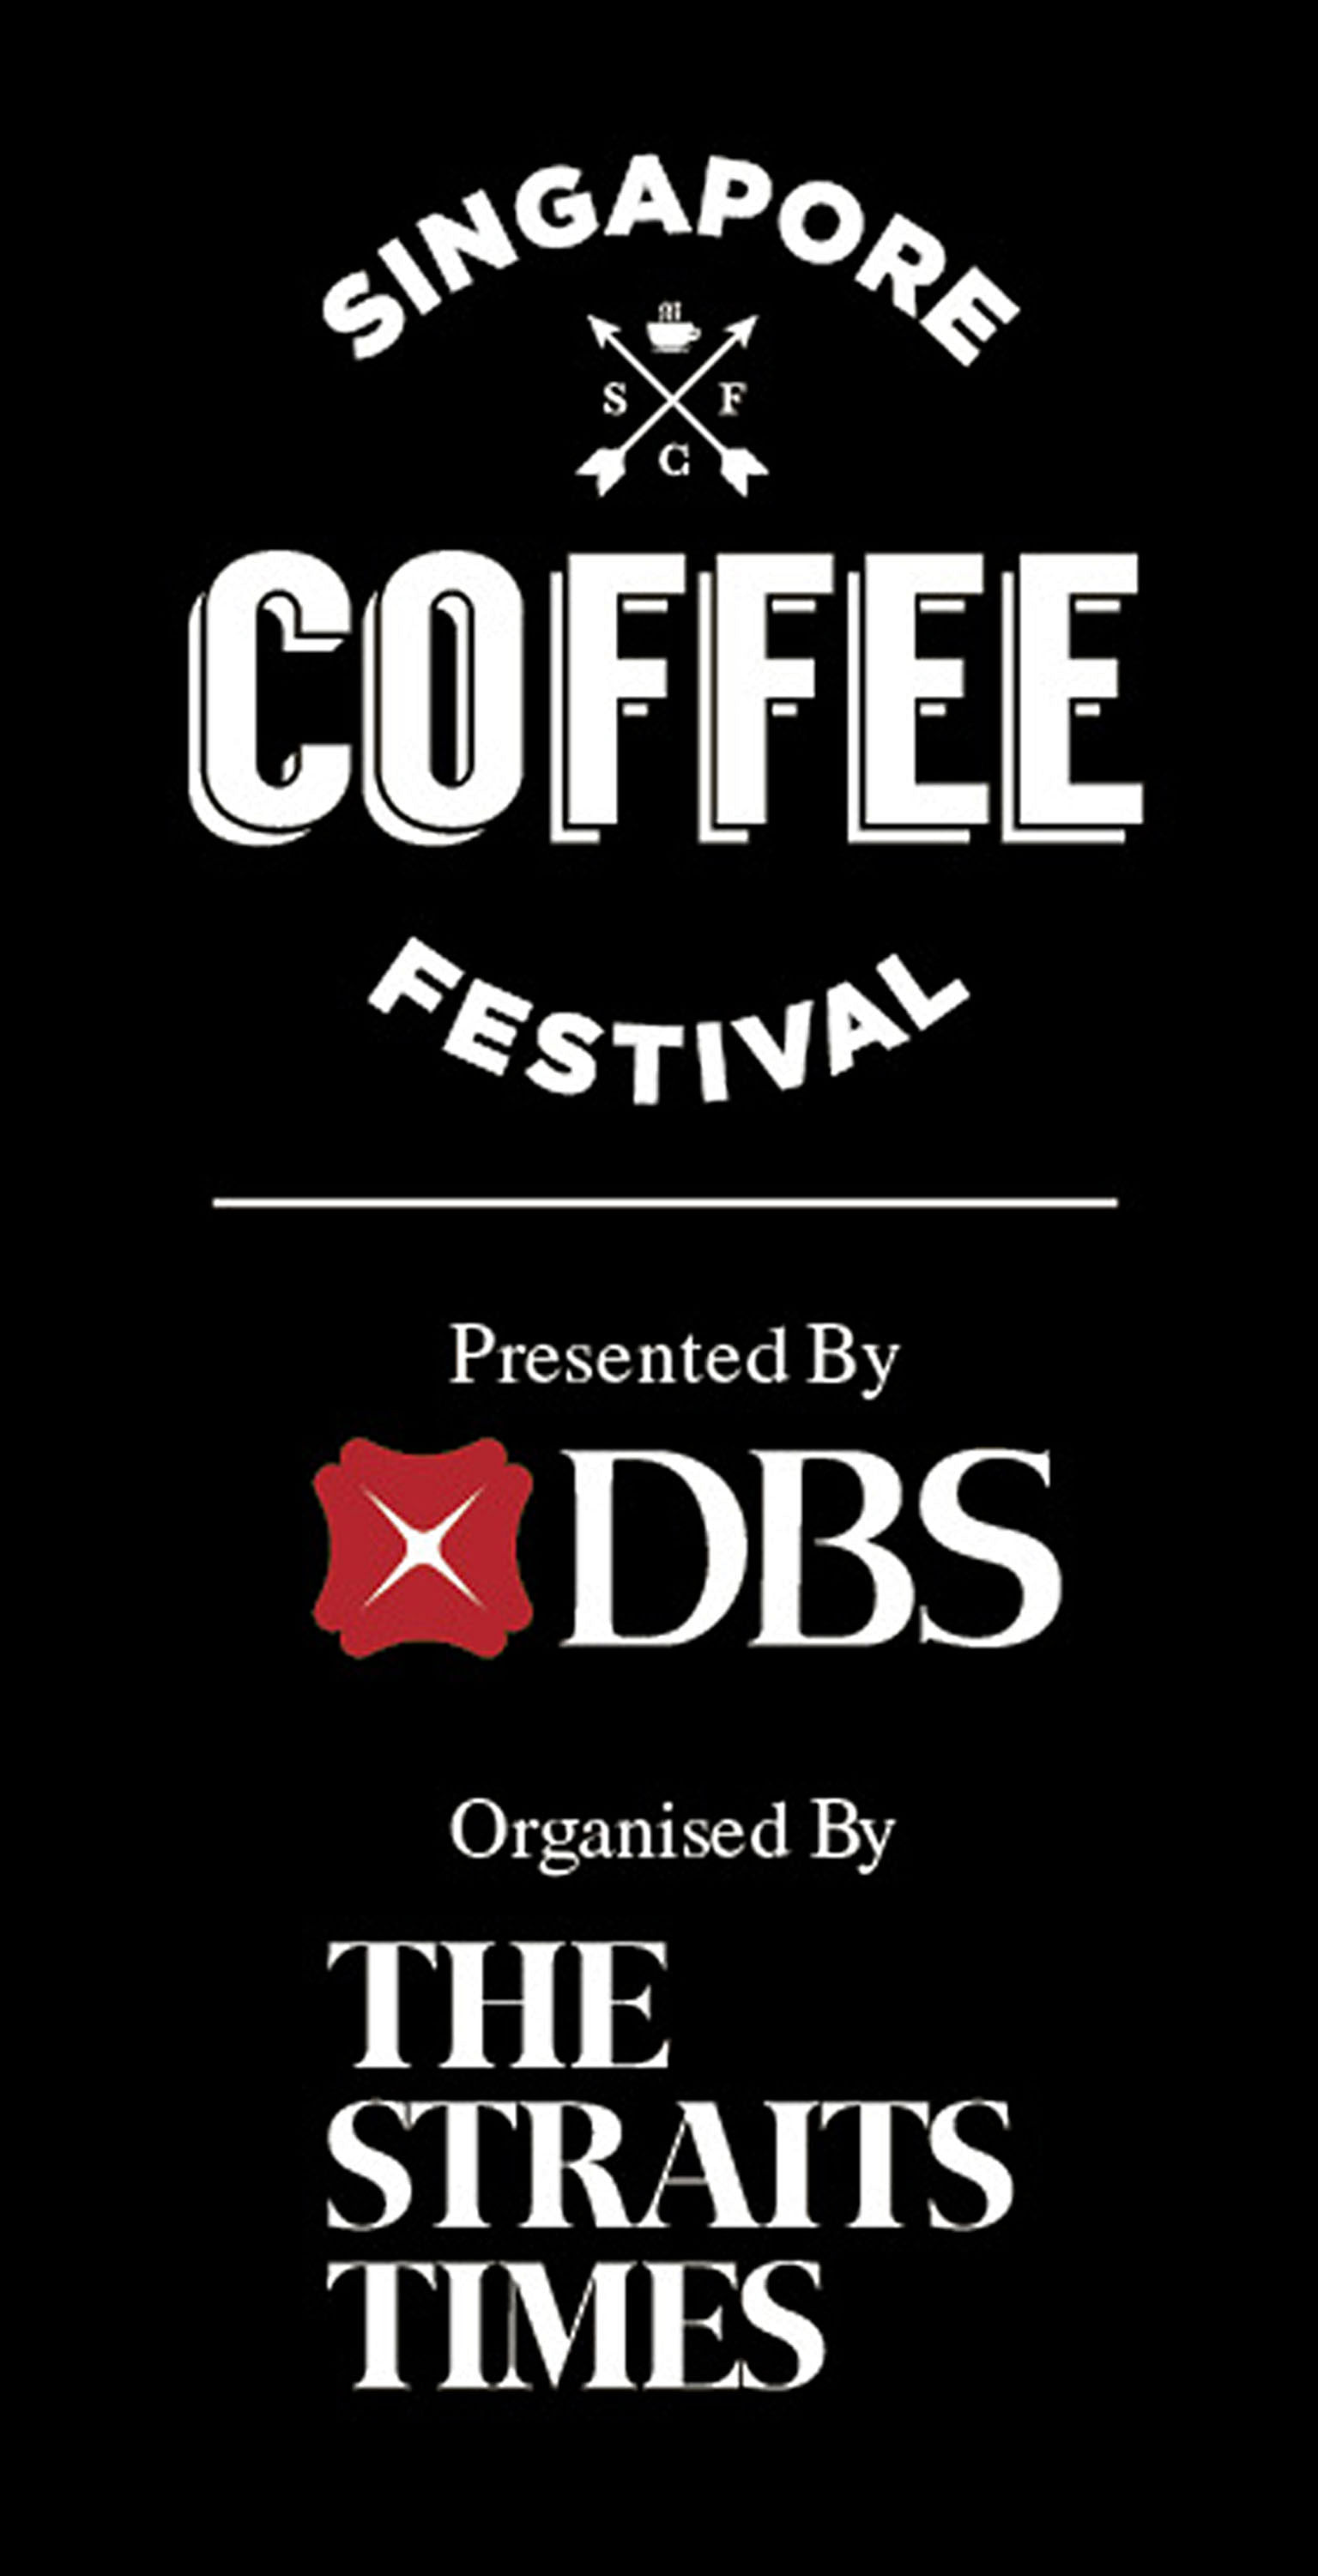 Singapore Coffee Festival Chock Full Of Beans And